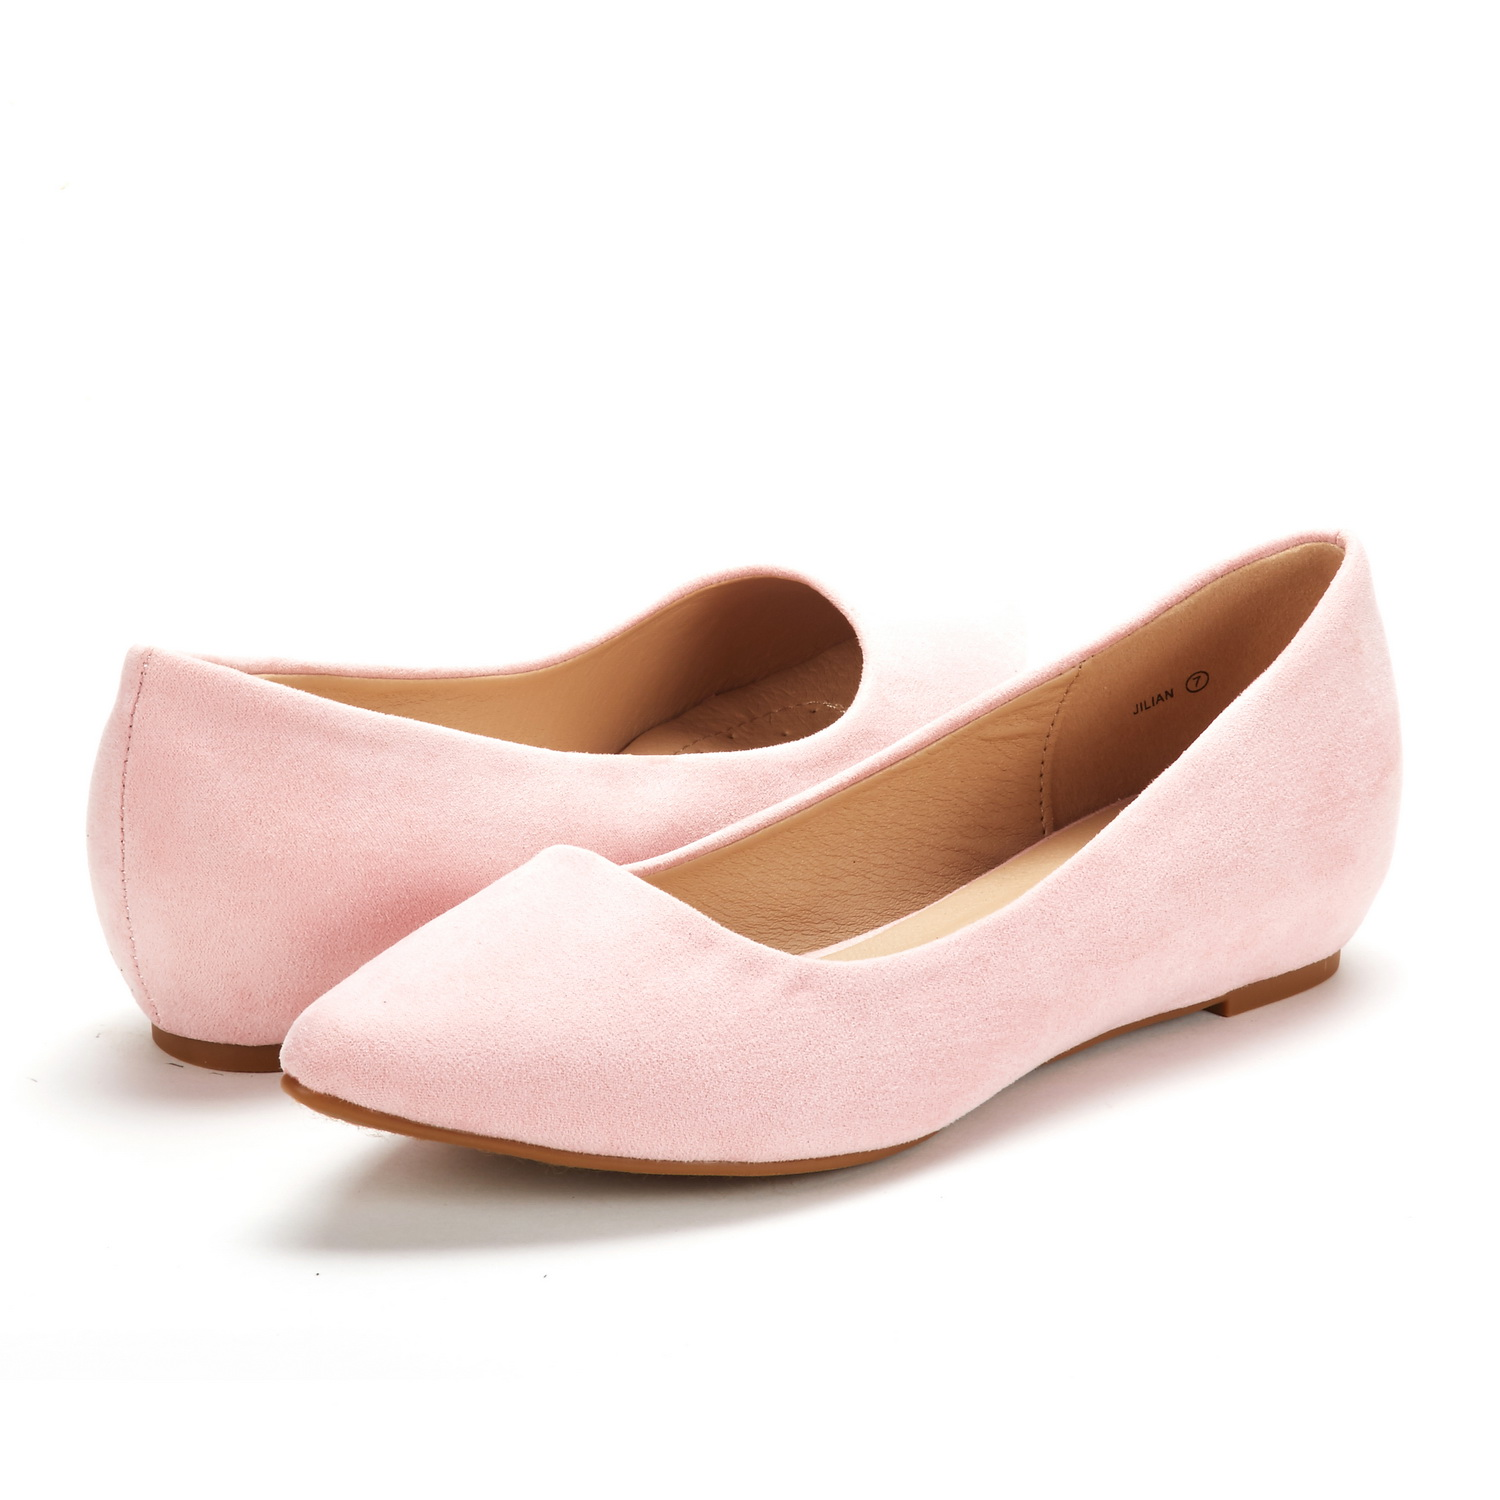 DREAM-PAIRS-Women-Low-Wedge-Flats-Ladies-Pointed-Toe-Slip-On-Comfort-Flat-Shoes thumbnail 75